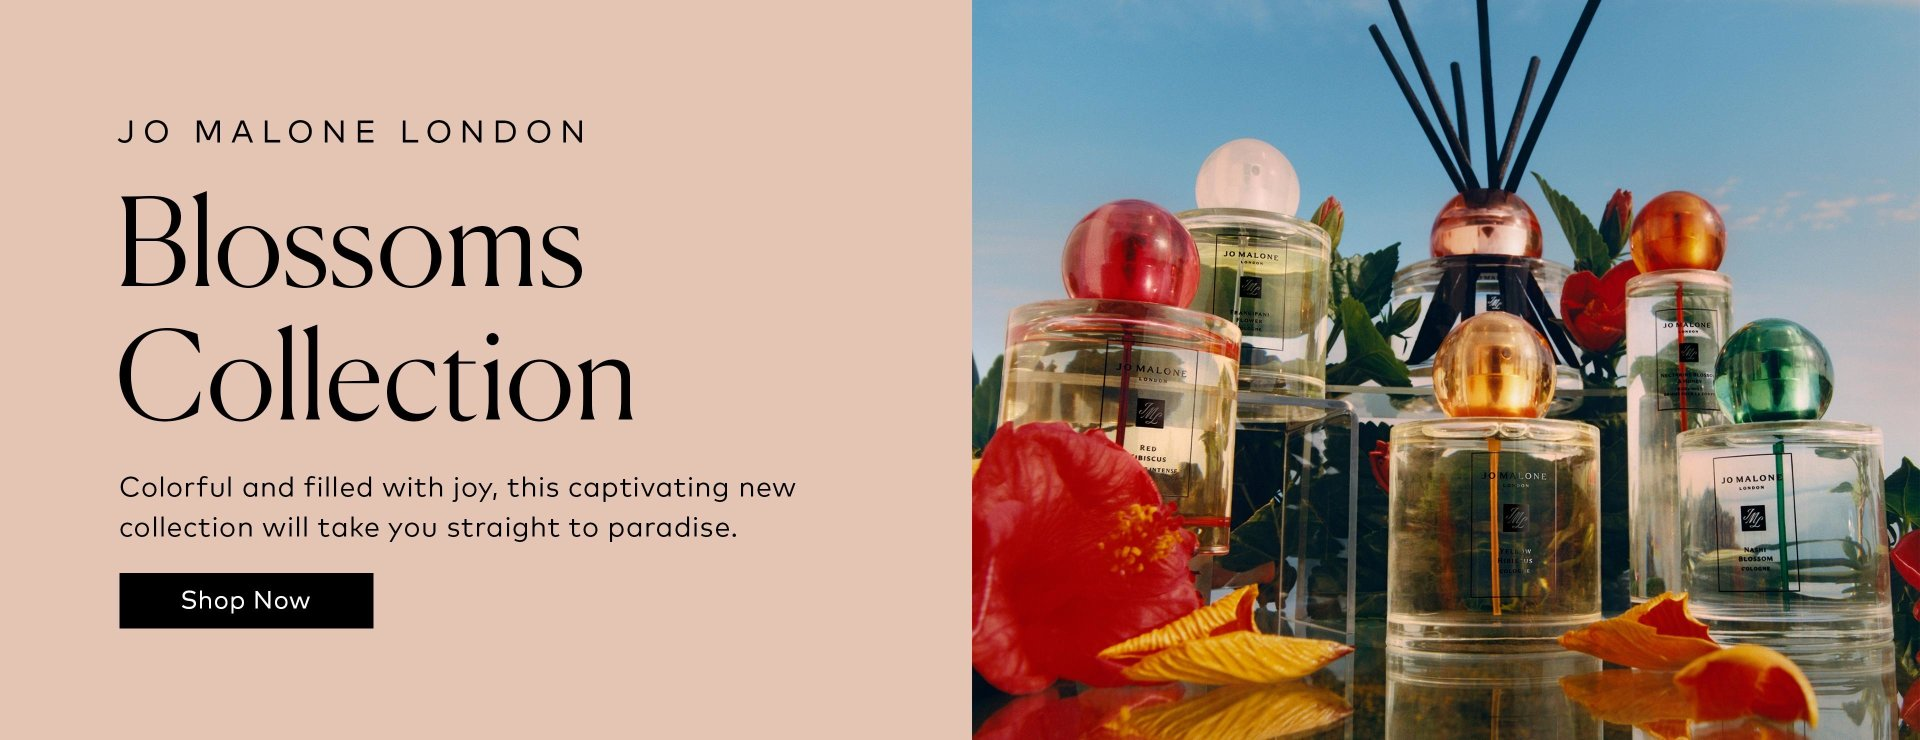 Shop Jo Malone London Blossoms Collection on Beautylish.com